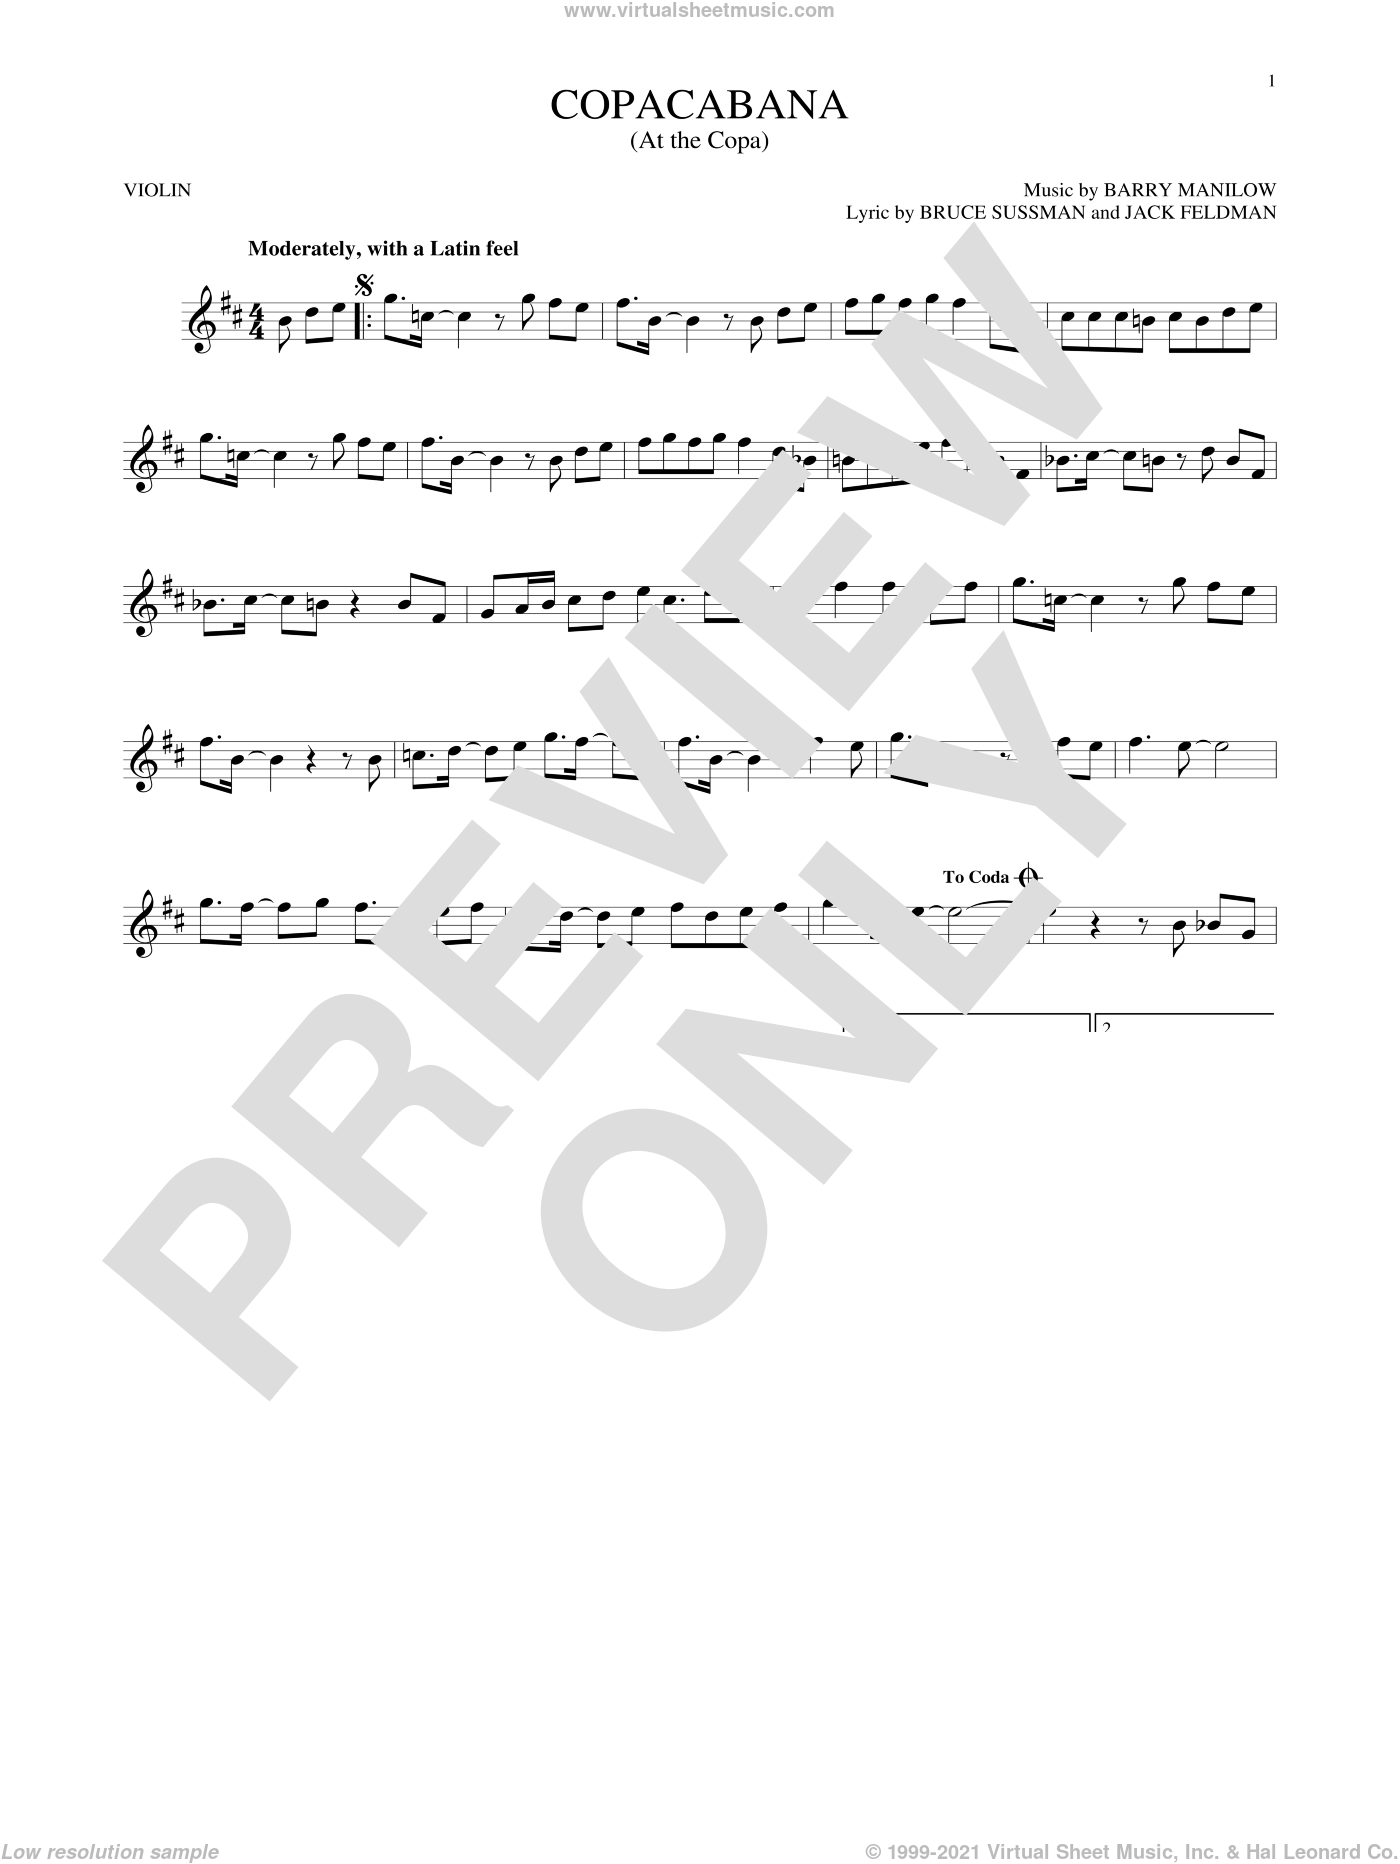 Copacabana (At The Copa) sheet music for violin solo by Barry Manilow, Bruce Sussman and Jack Feldman, intermediate skill level